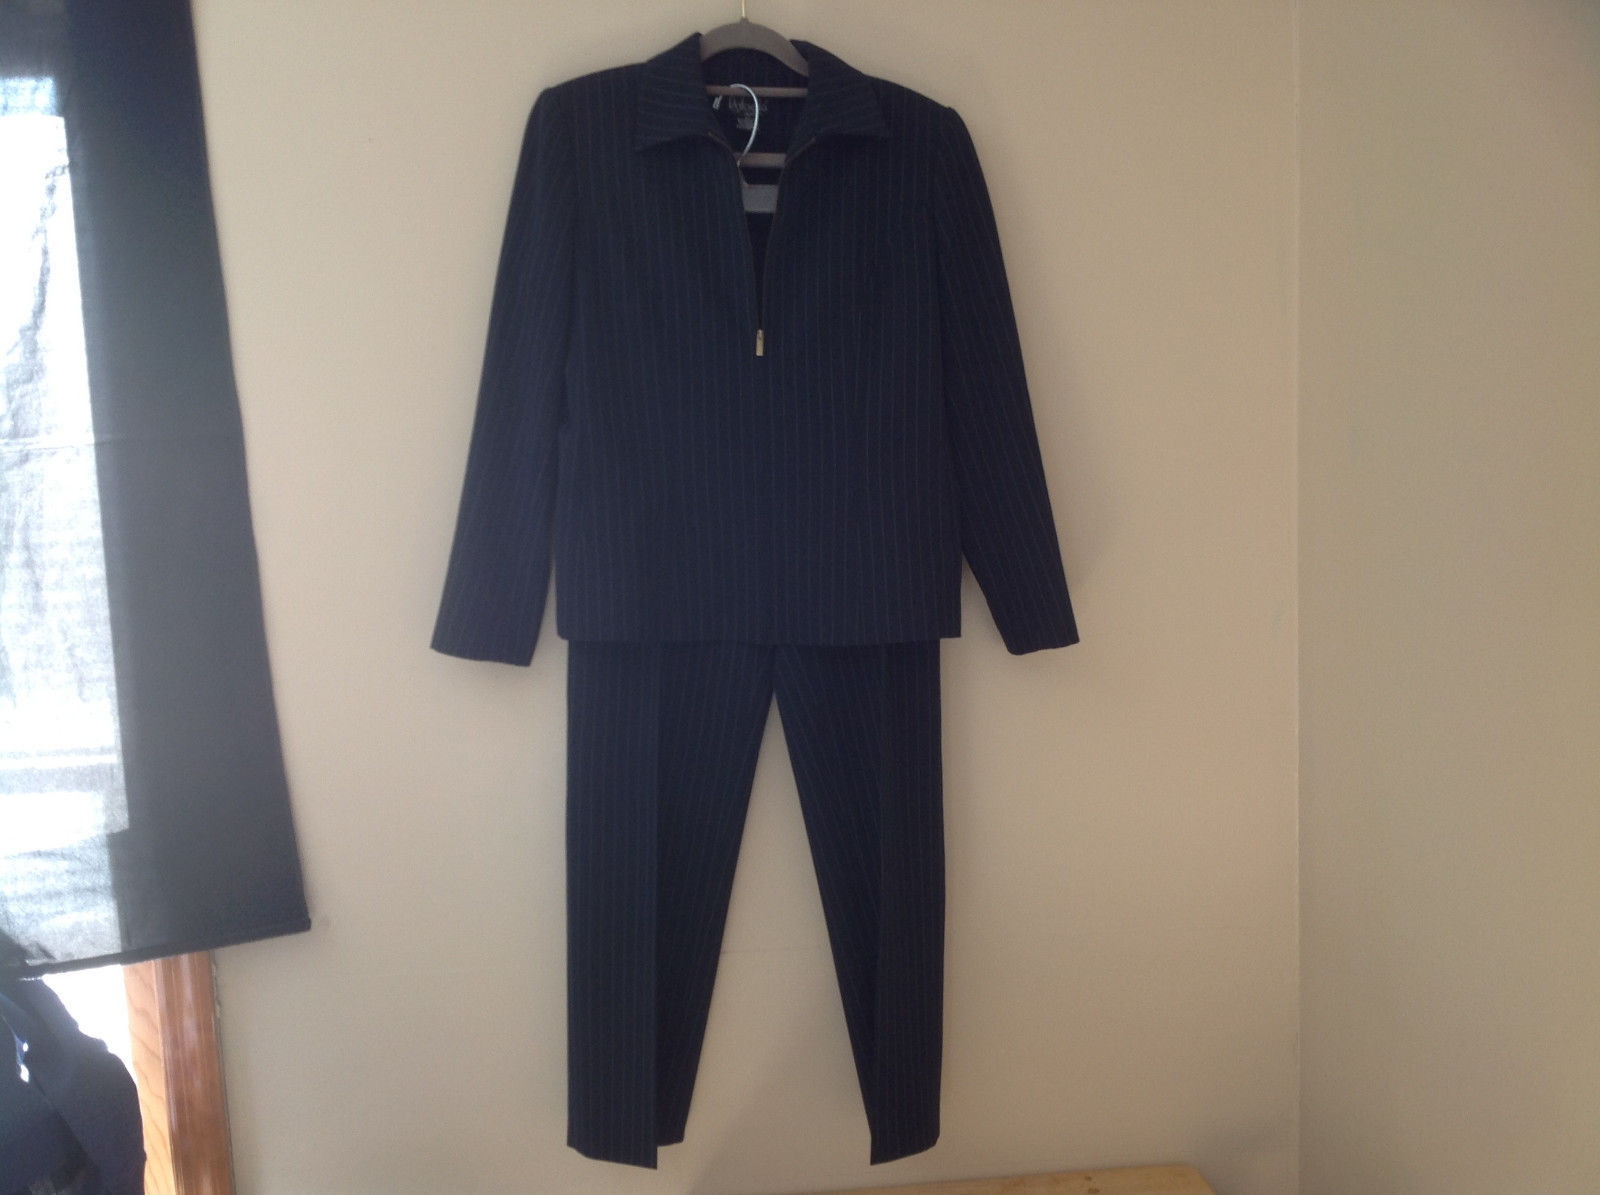 Navy Blue Pinstriped Pant Suit Rafaella Petites Jacket and Pants Size 4P